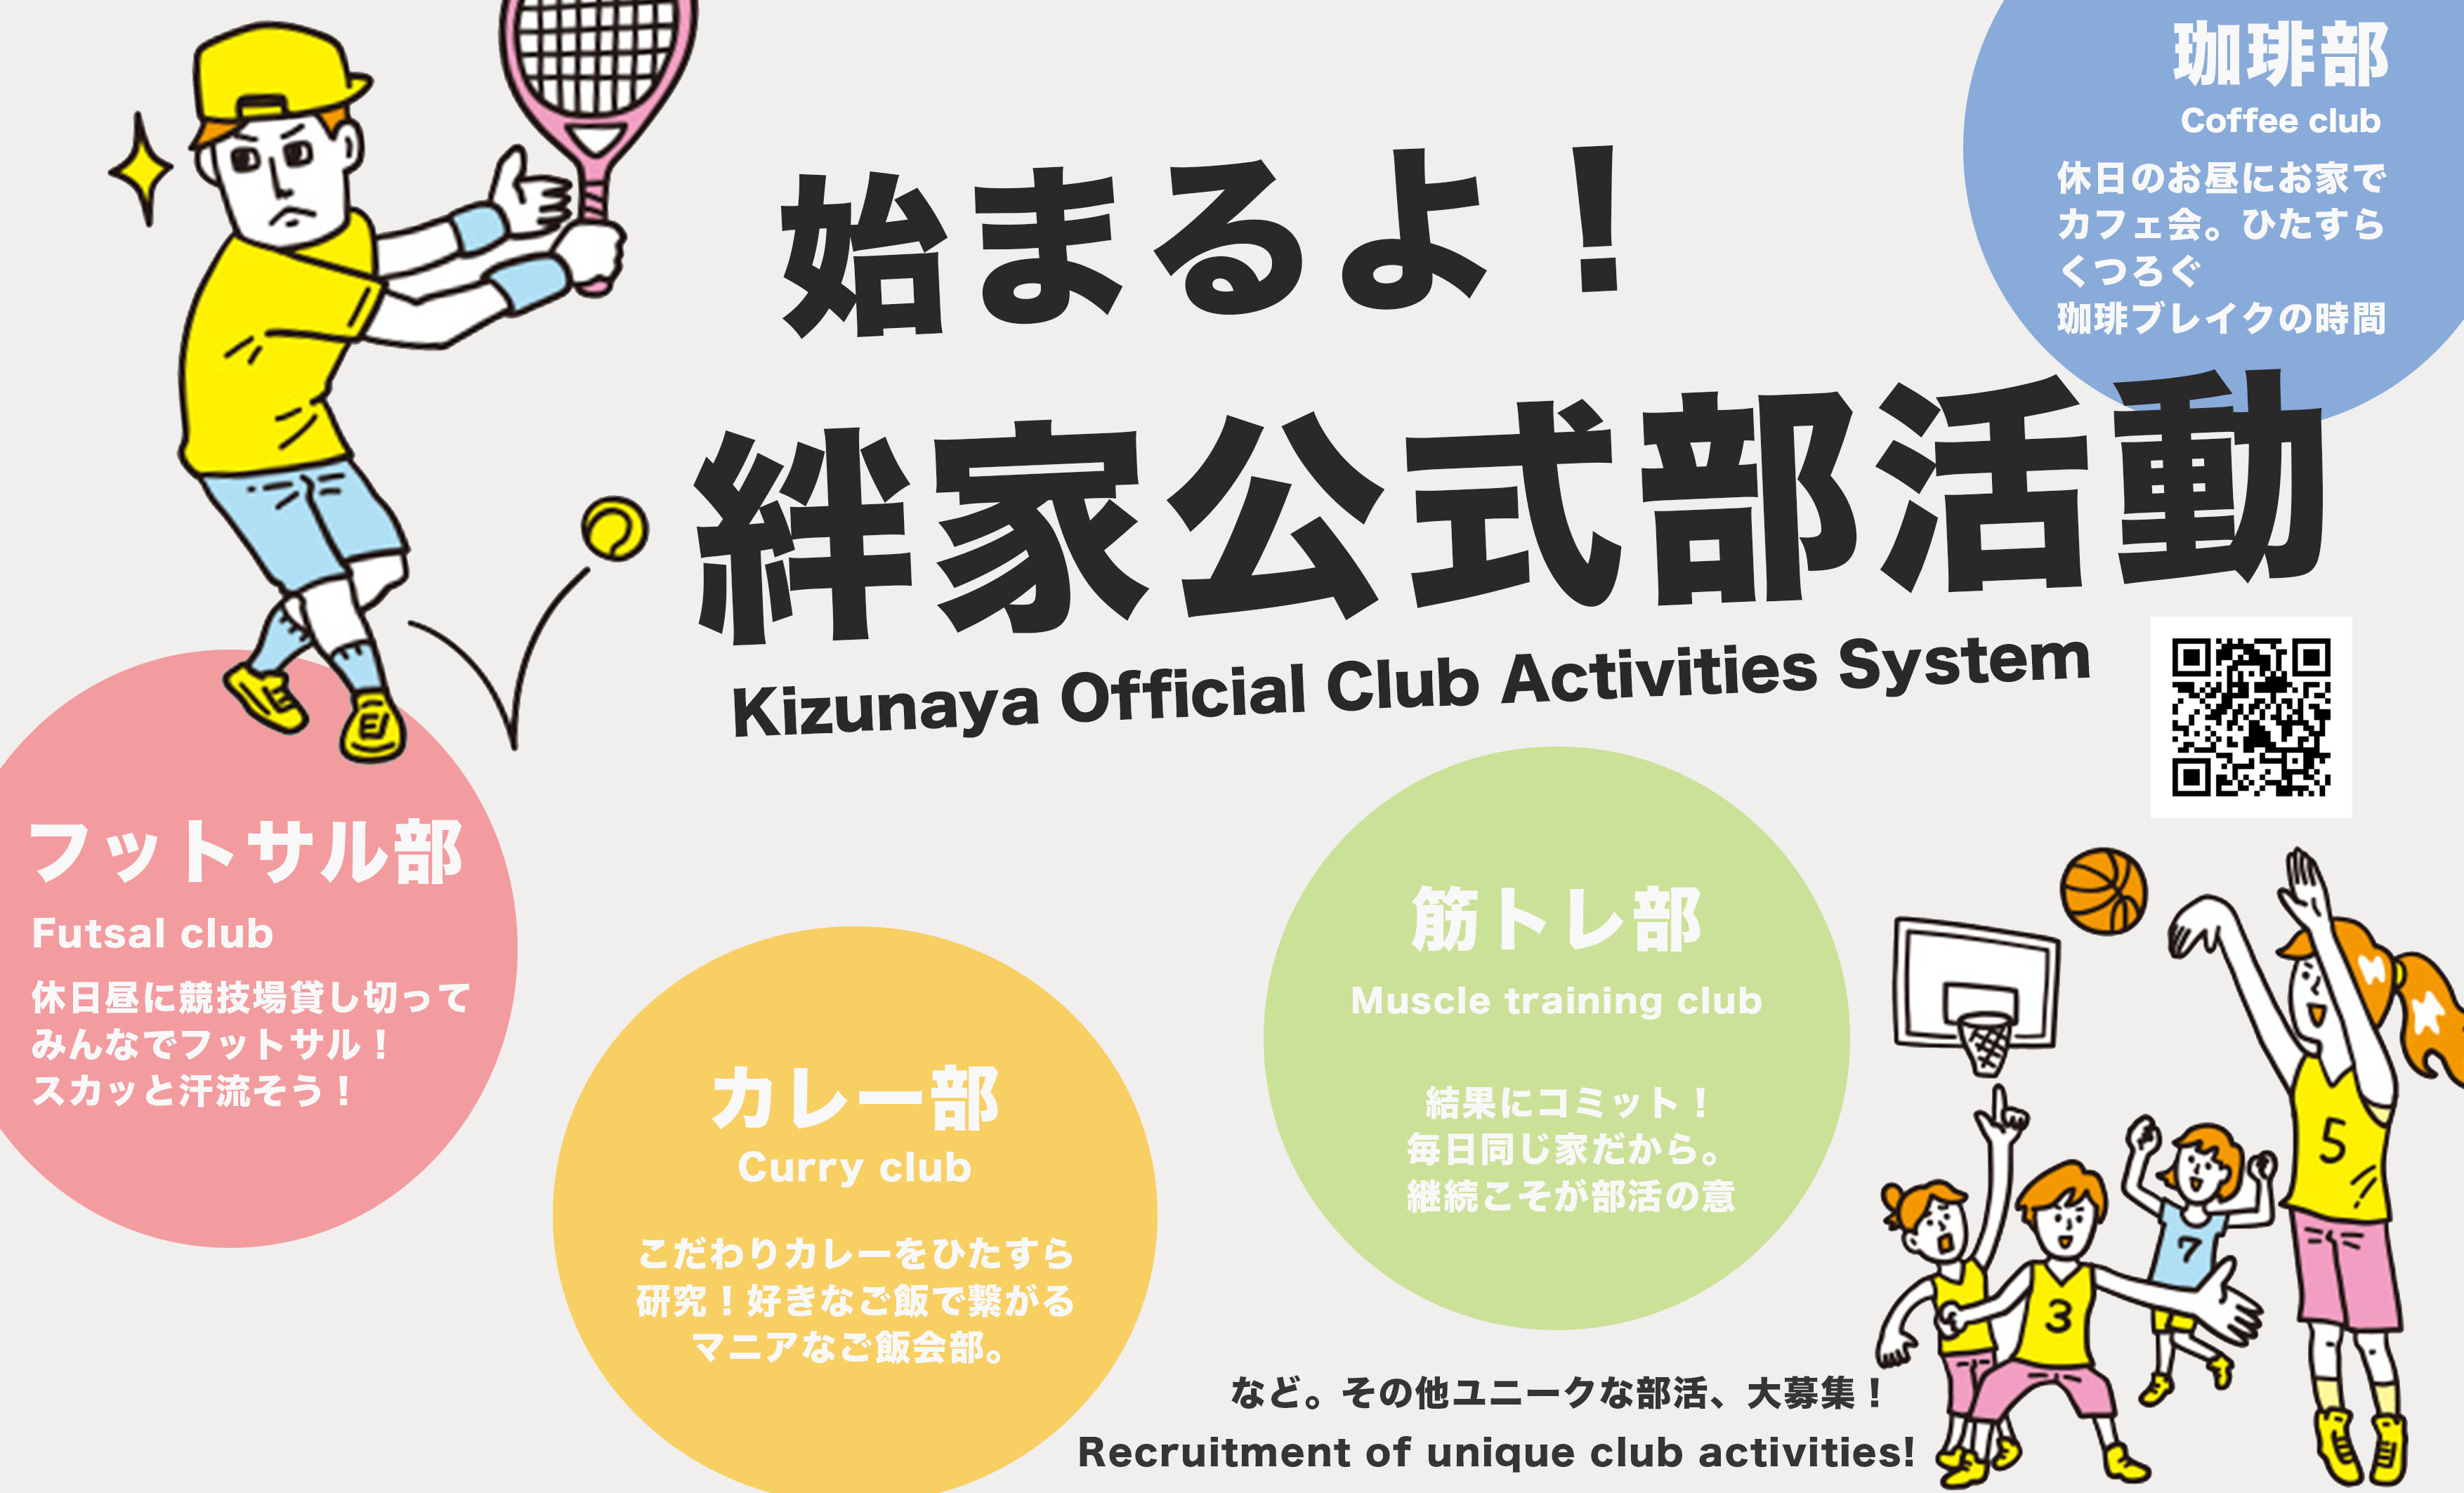 Kizunaya Official Club Activities System (For Residents)